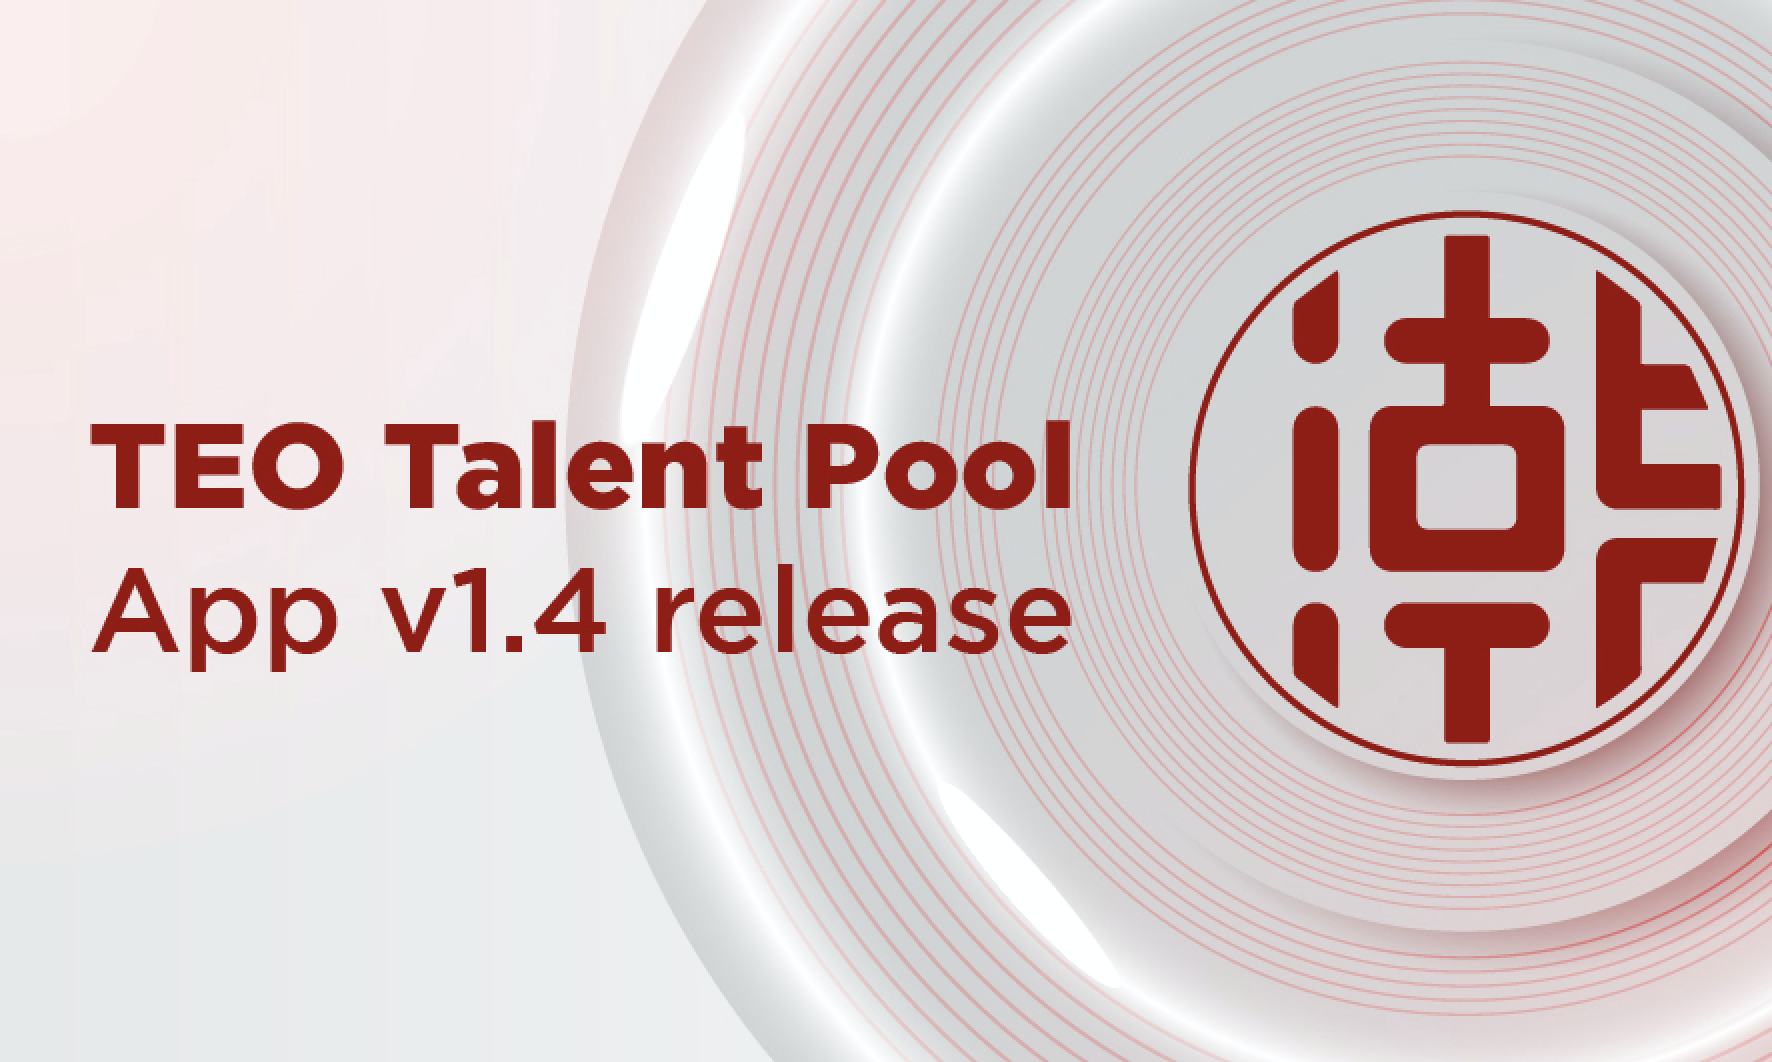 TEO Talent Pool App v1.4 is here! Profile, explore and more…